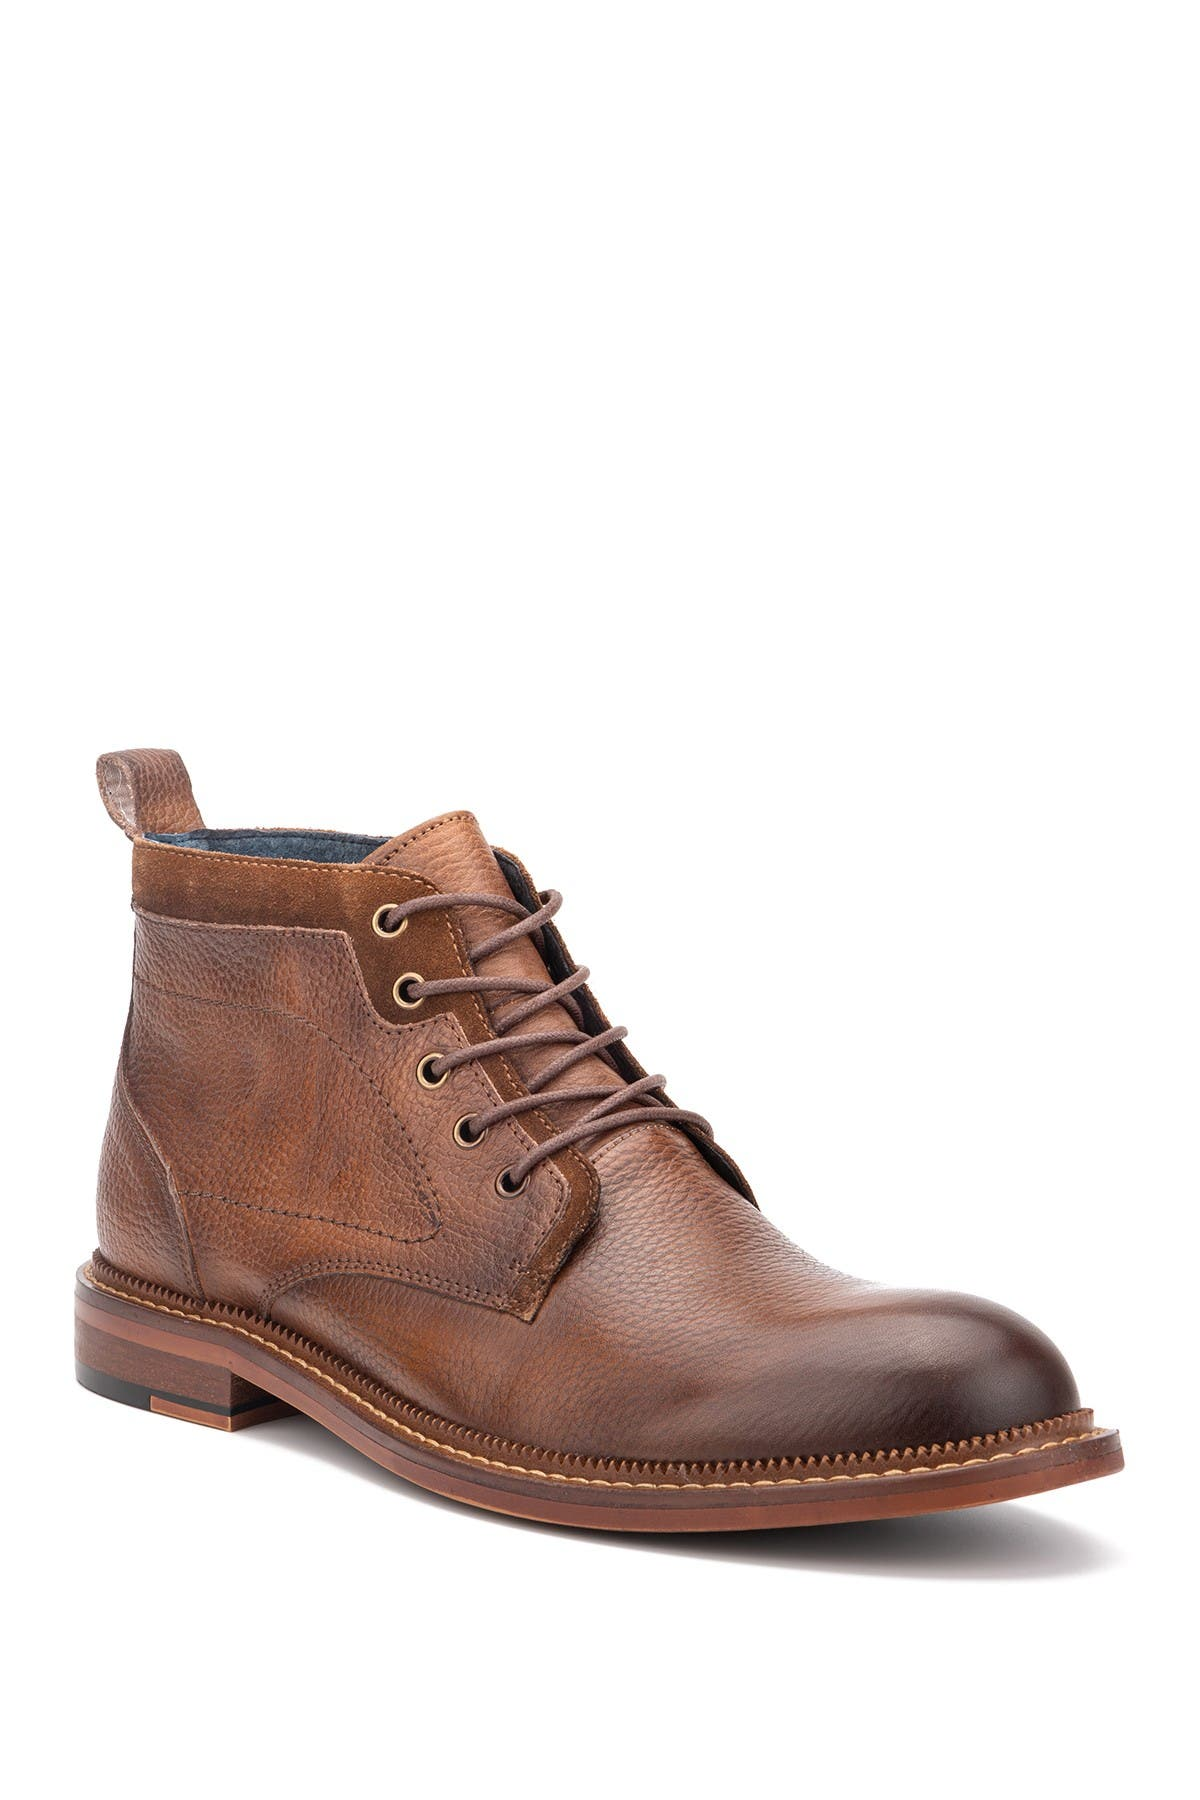 Image of Vintage Foundry Rowell Leather Chukka Boot